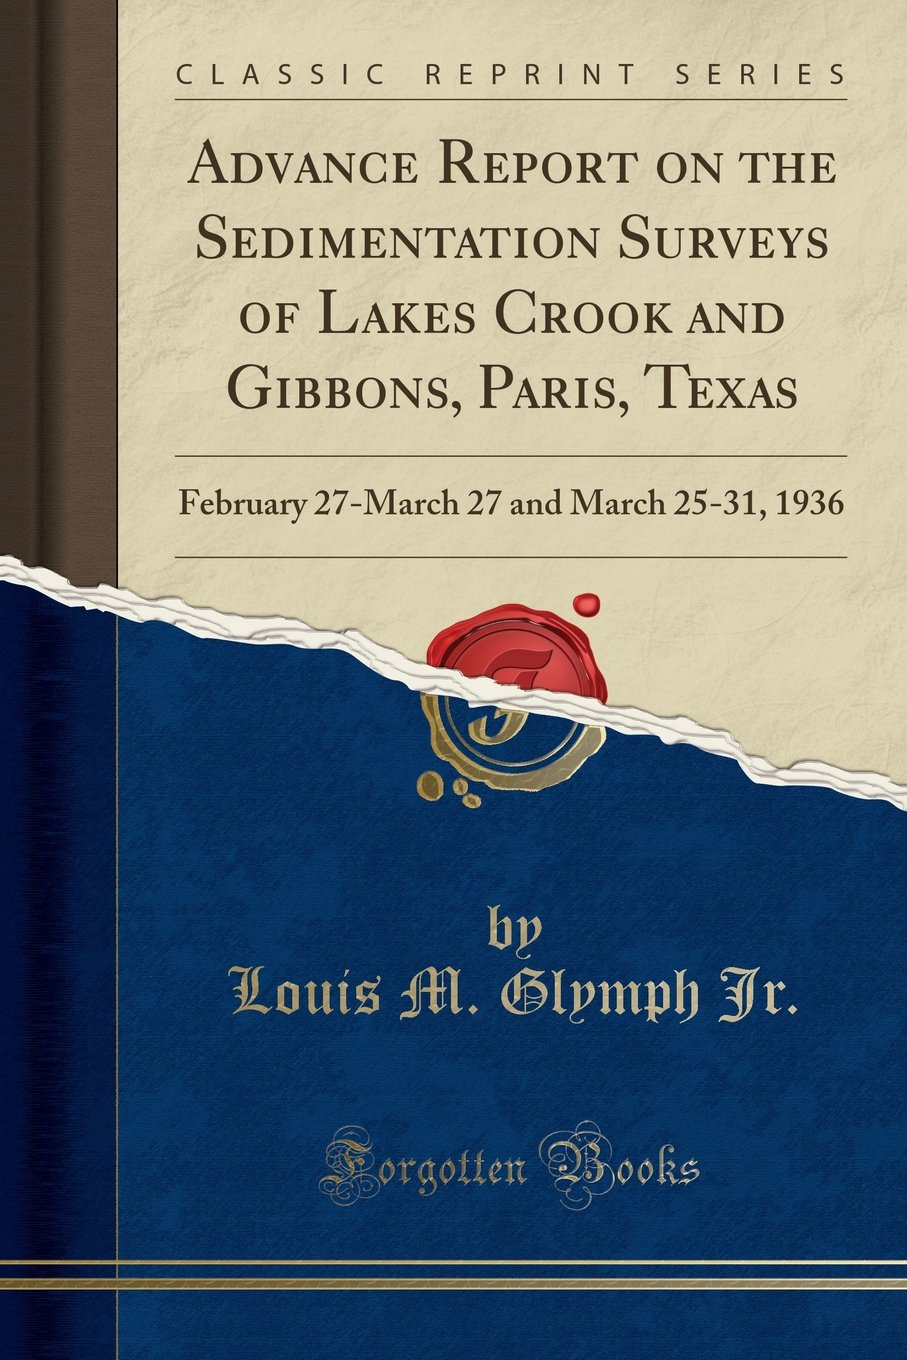 Read Online Advance Report on the Sedimentation Surveys of Lakes Crook and Gibbons, Paris, Texas: February 27-March 27 and March 25-31, 1936 (Classic Reprint) ebook